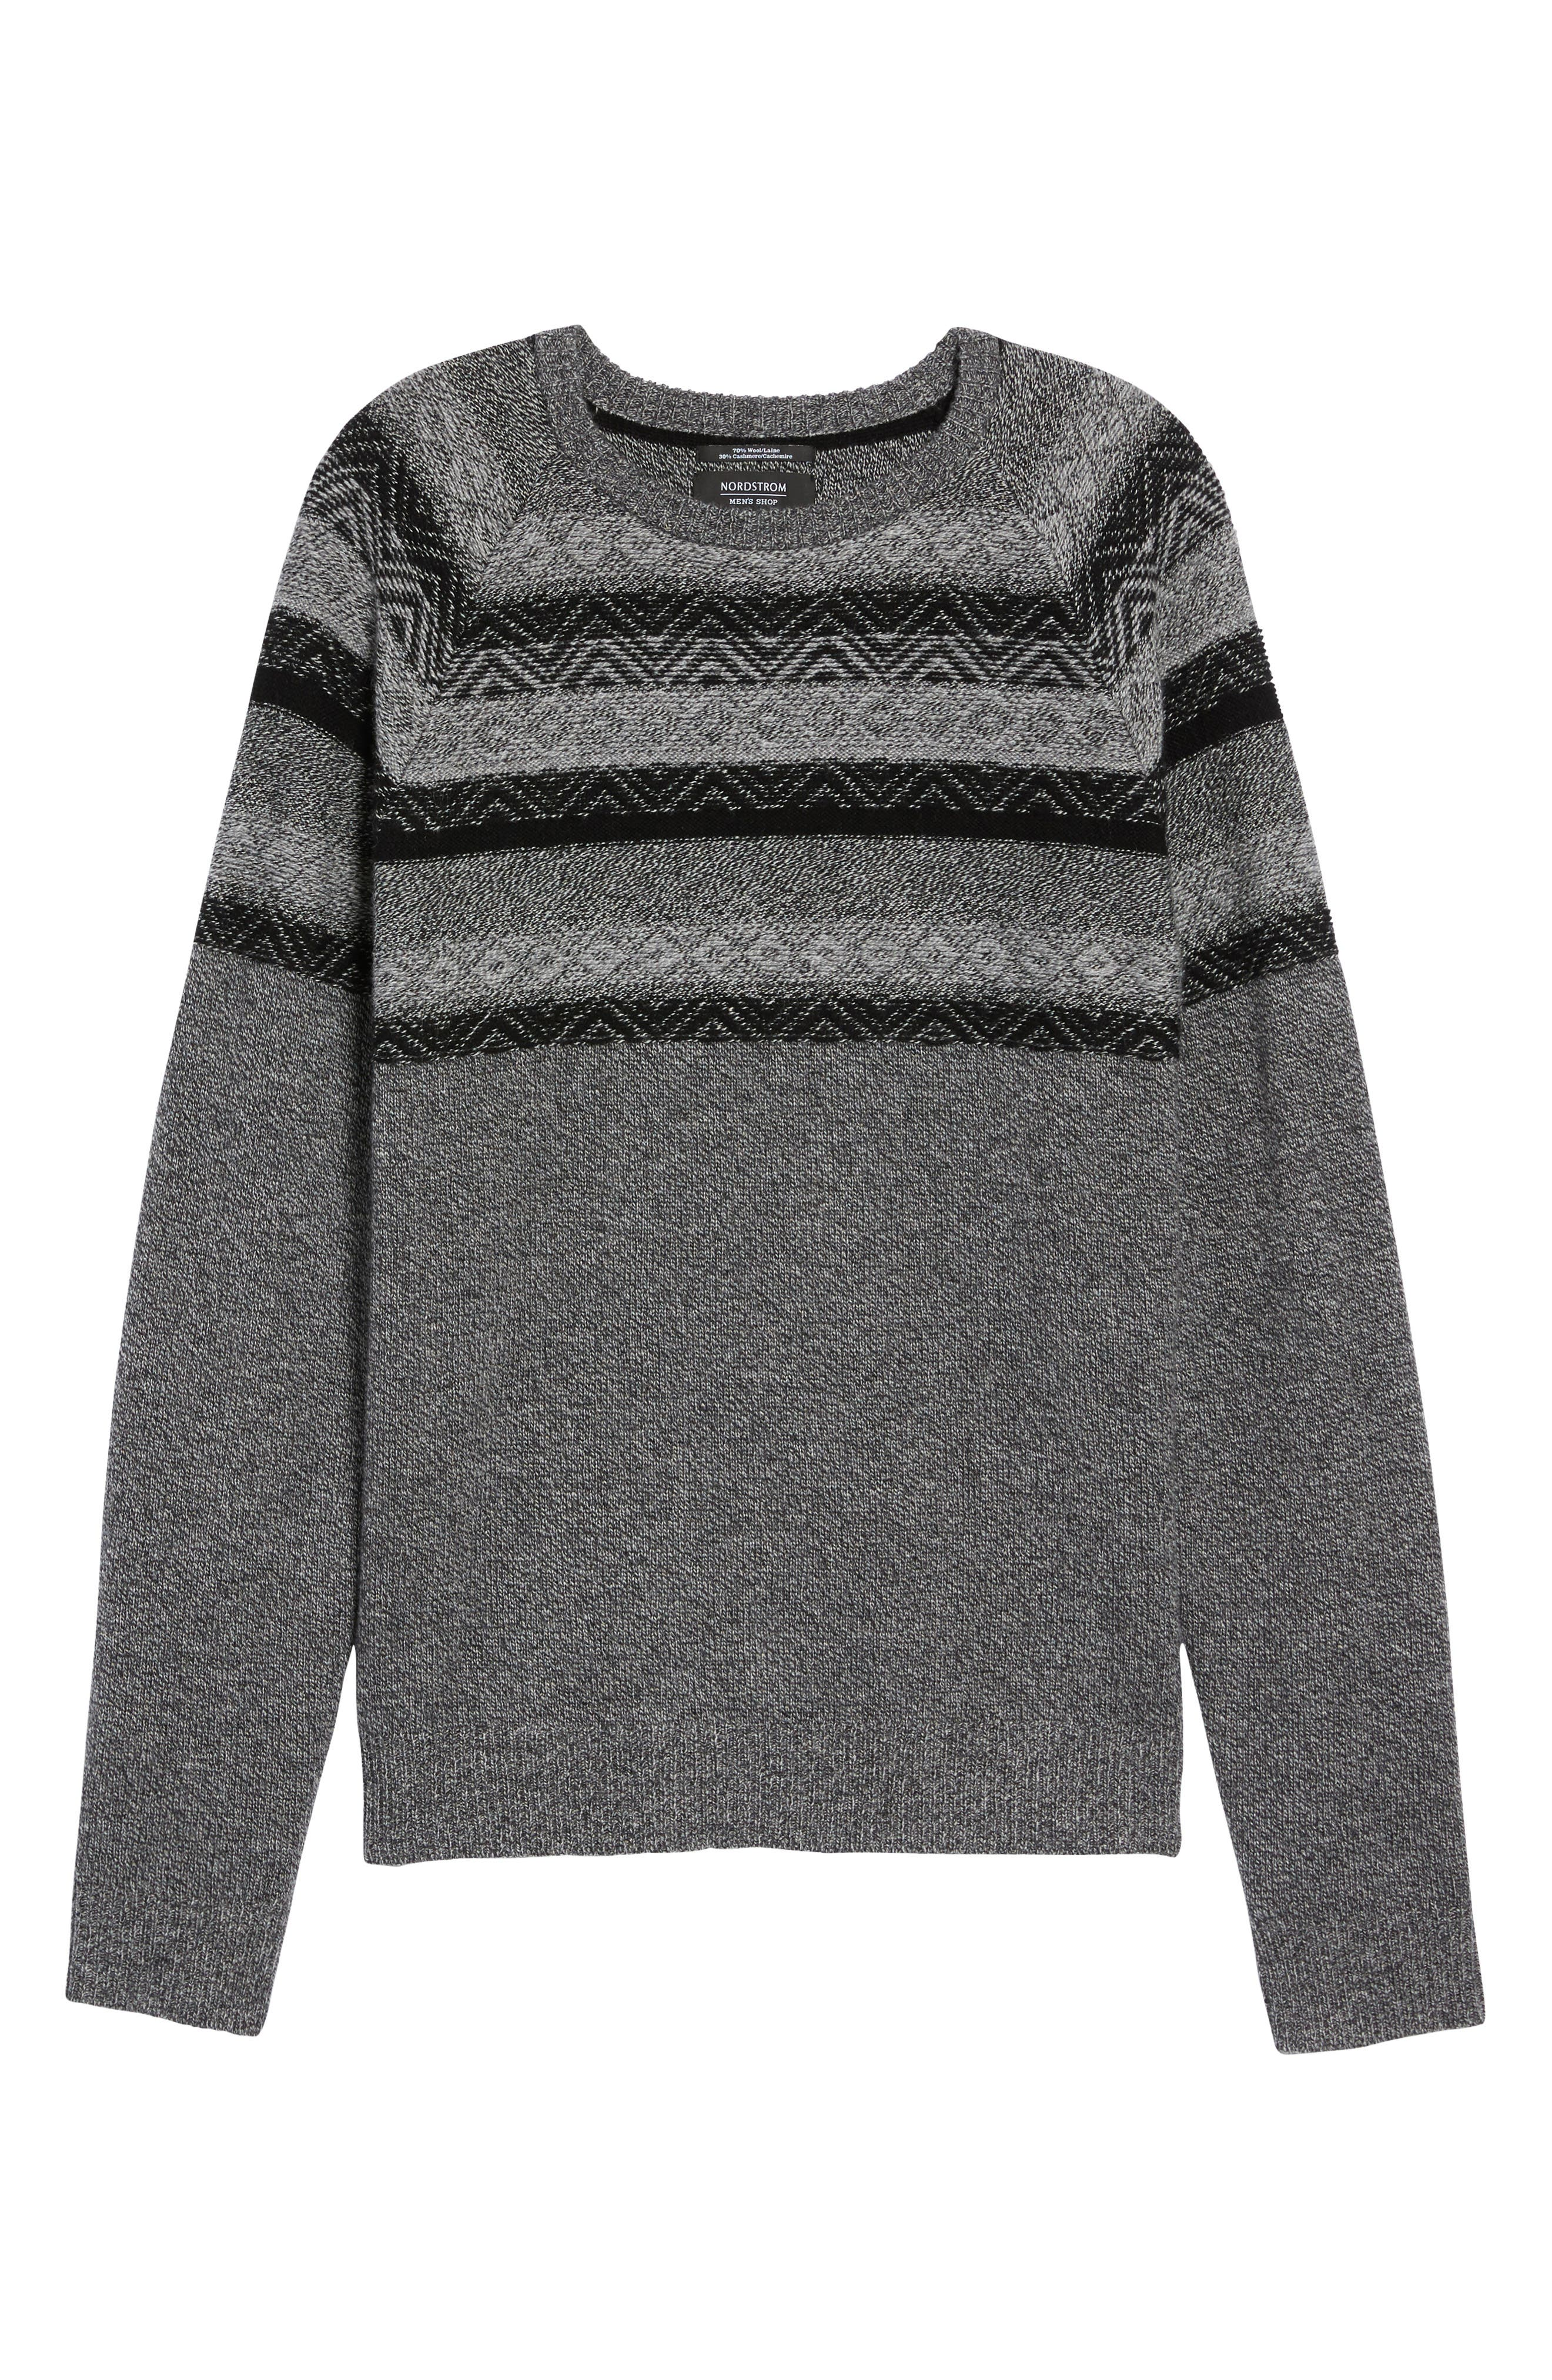 Pattern Wool & Cashmere Sweater,                             Alternate thumbnail 6, color,                             021